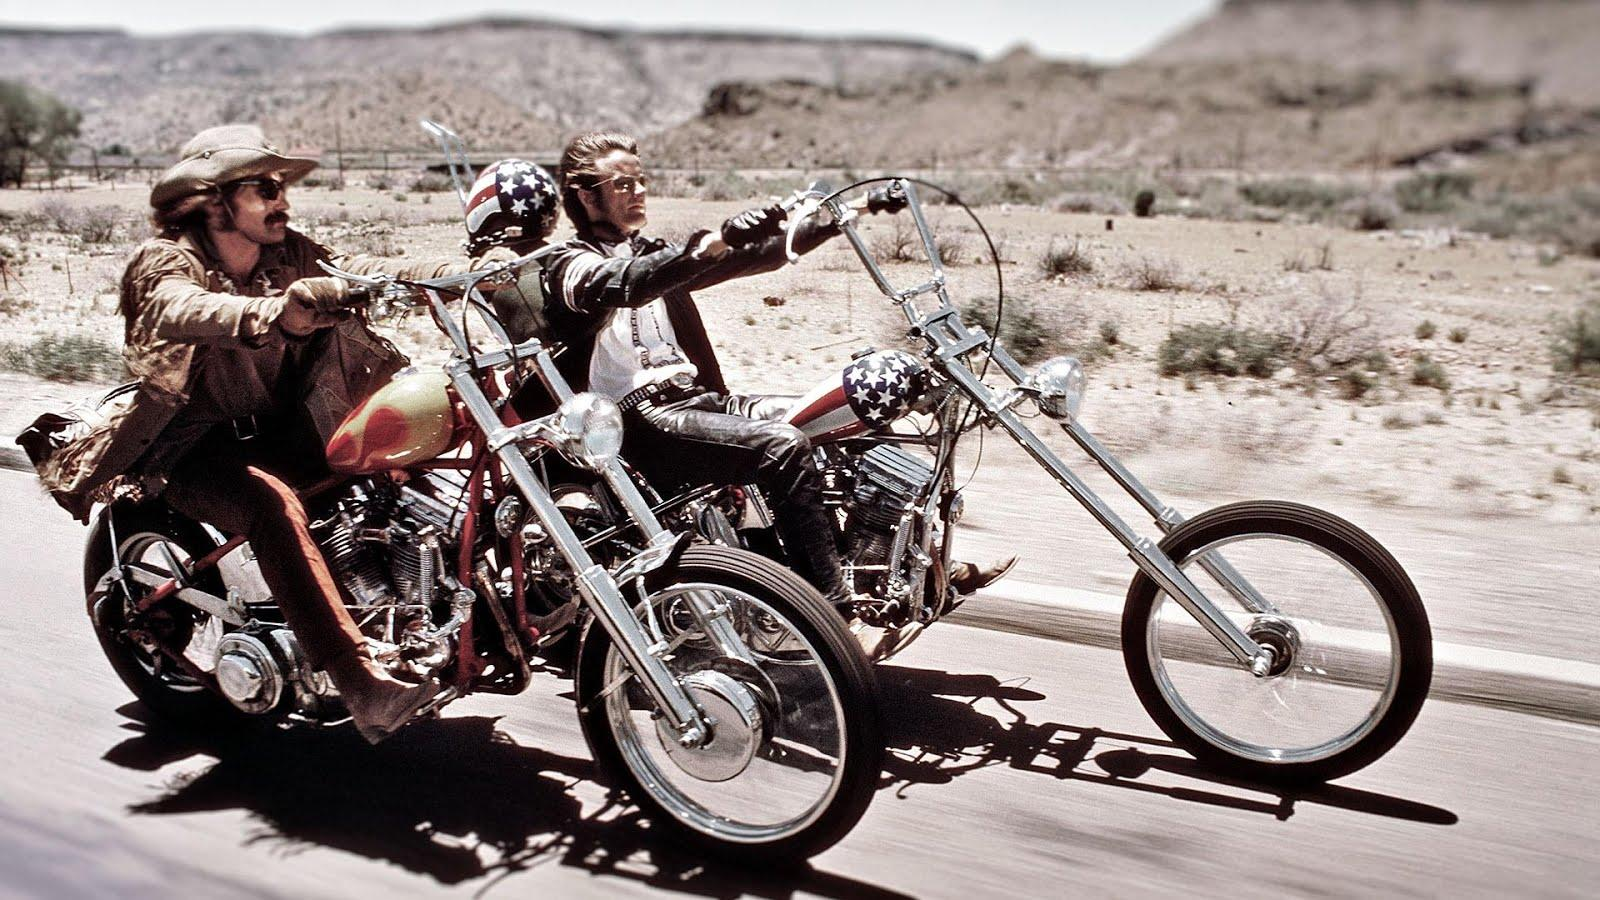 Top easy rider nude scenes, sexiest pics clips